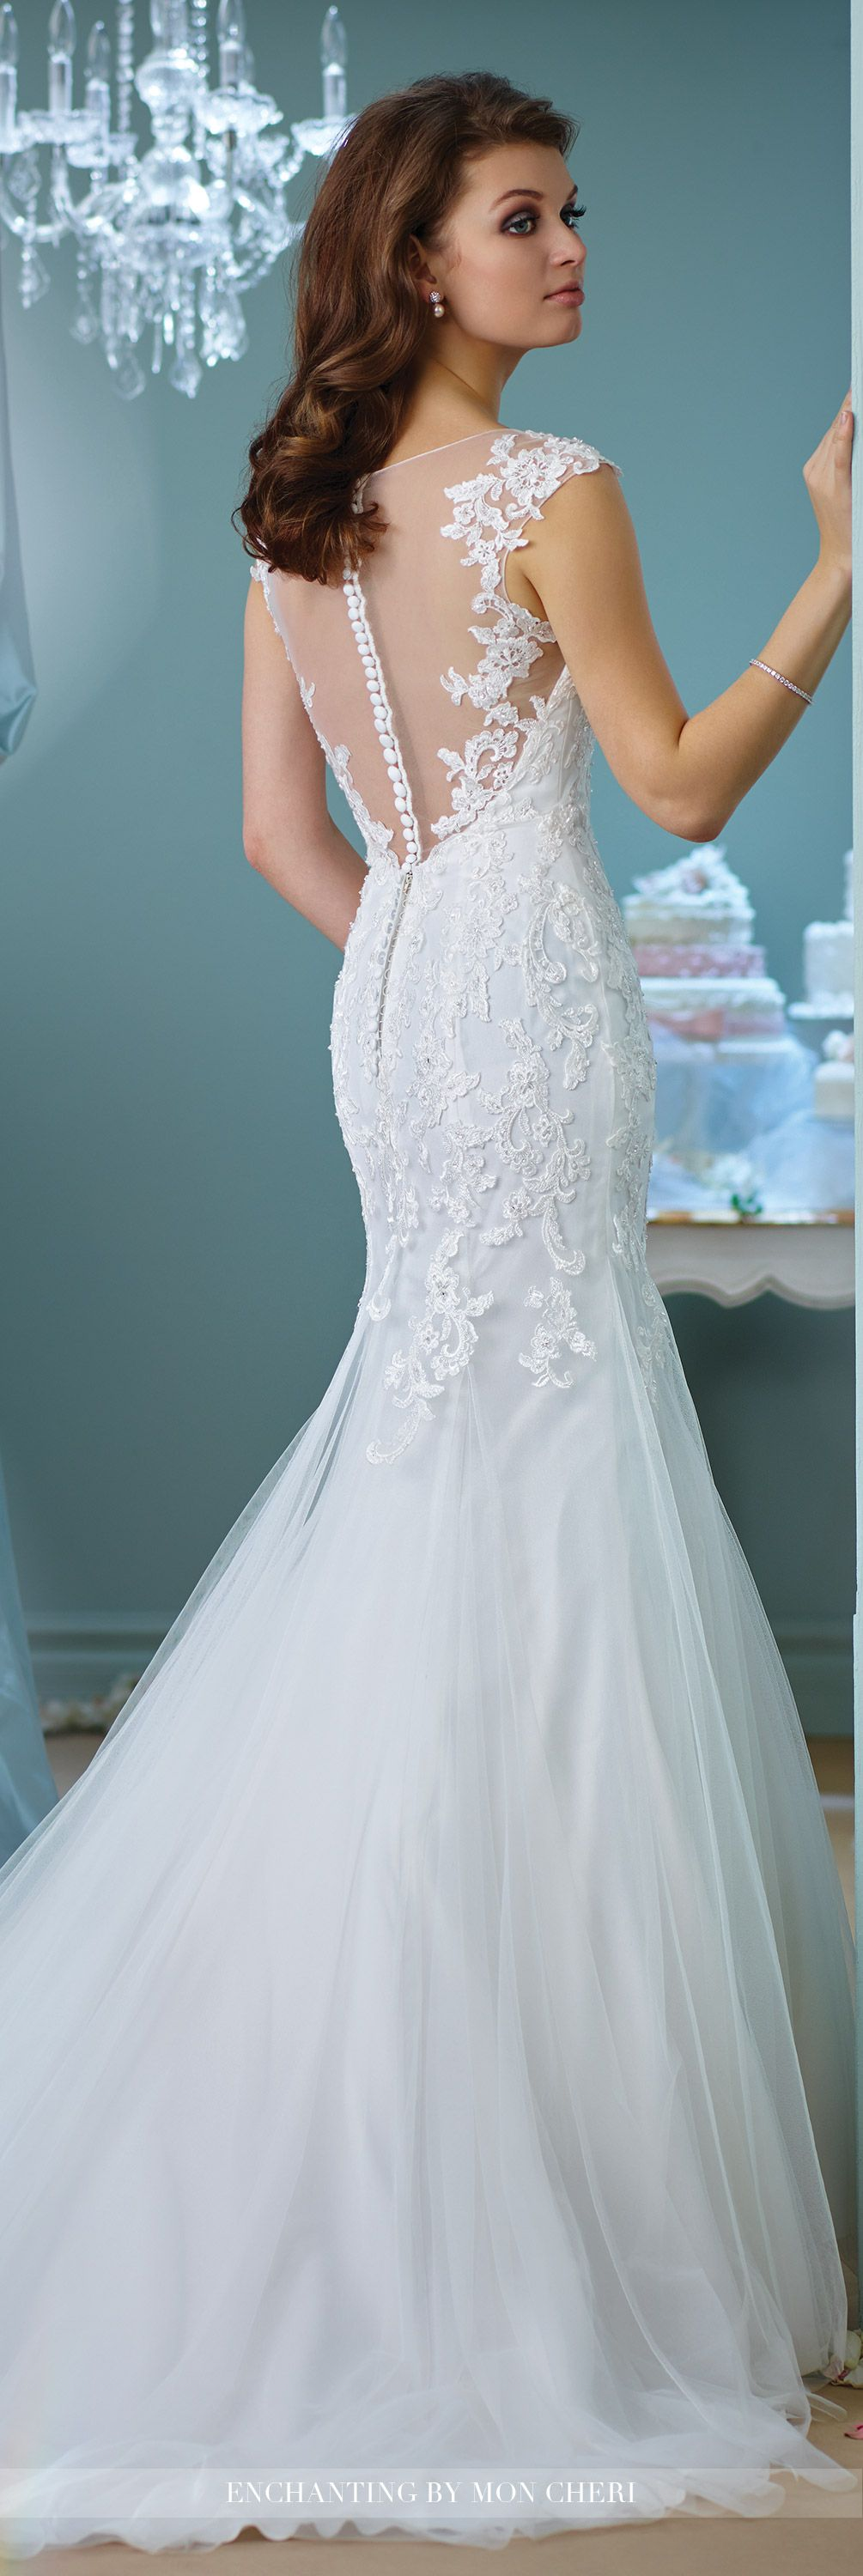 Nice Wedding Dress Shop Norwich Collection - All Wedding Dresses ...